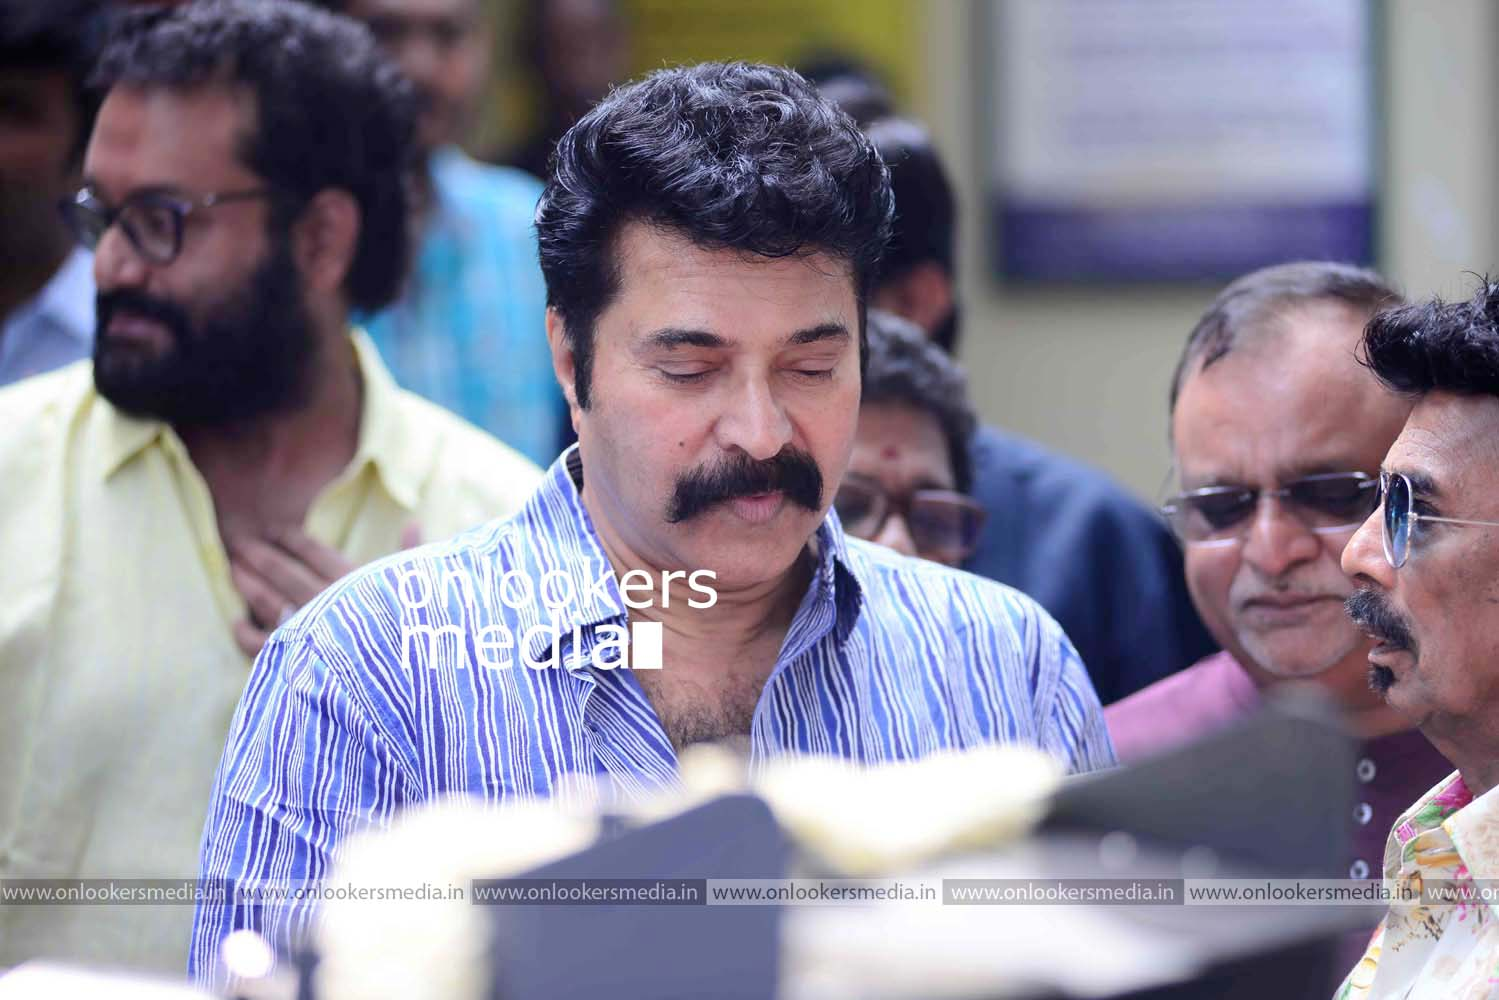 http://onlookersmedia.in/wp-content/uploads/2016/11/Puthan-Panam-Pooja-Stills-Photos-Mammootty-Ranjith-1.jpg